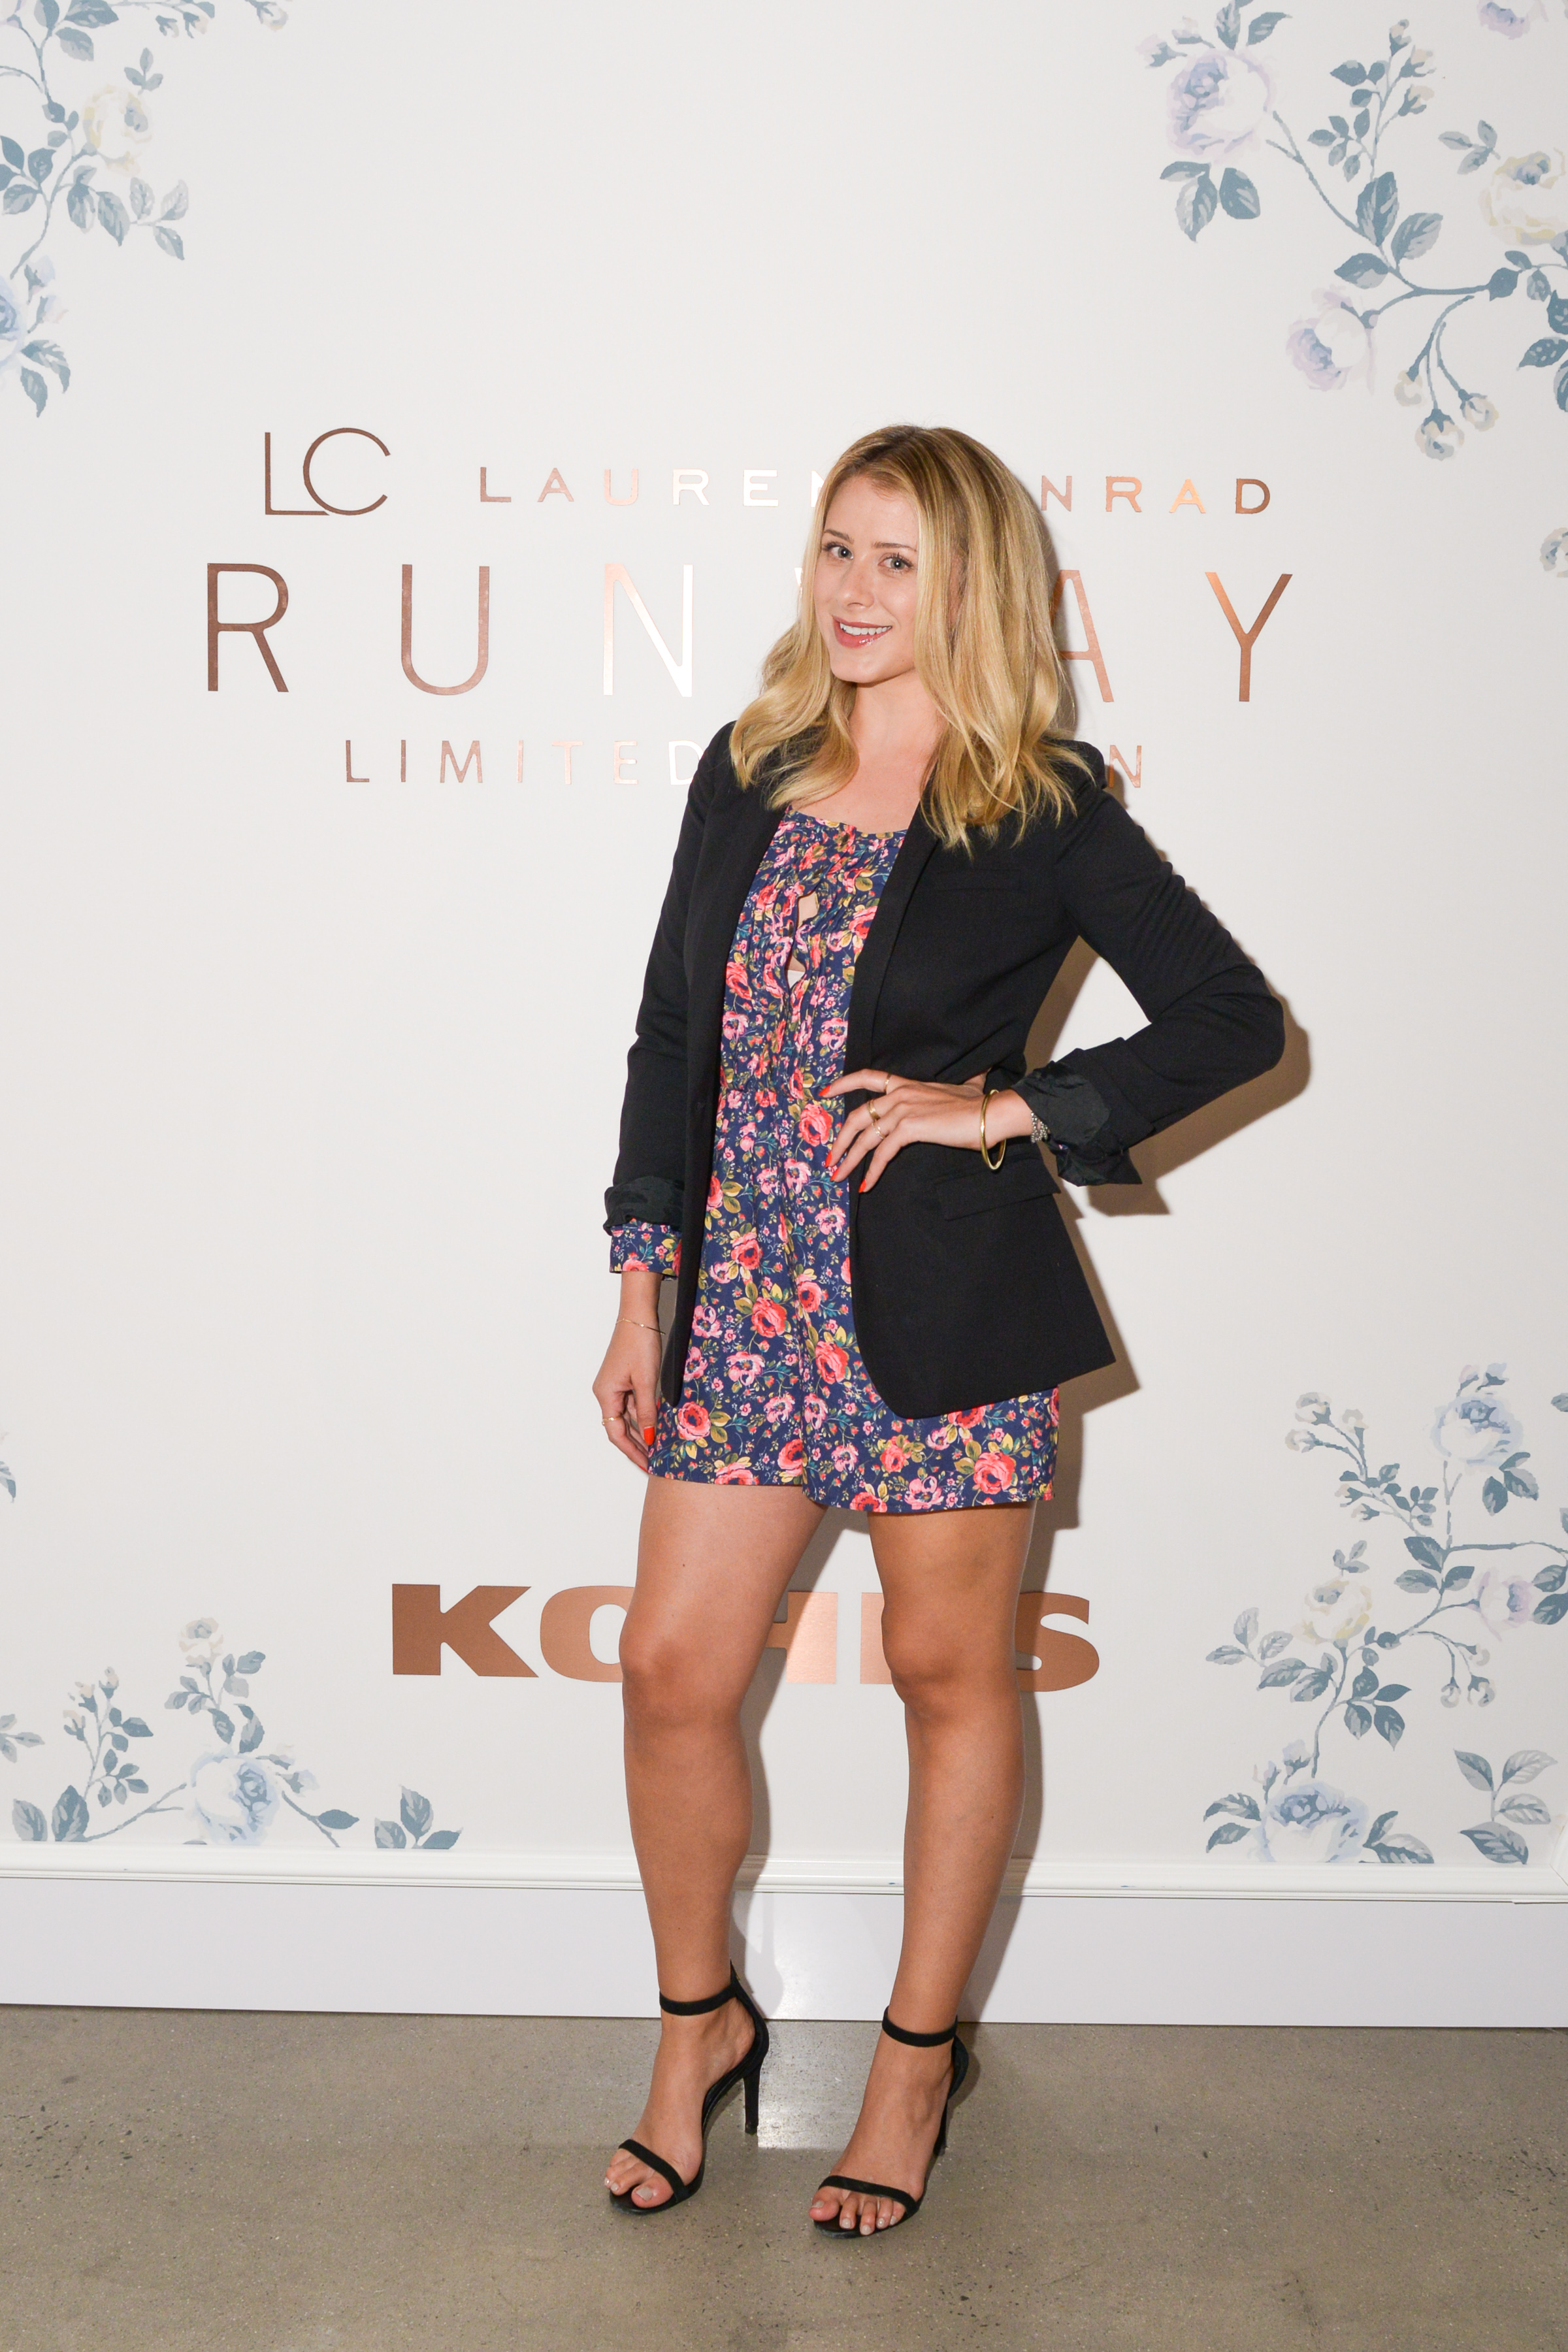 Lo Bosworth at the LC Lauren Conrad Runway Collection for Kohl's NYFW Show. Photography by  Jennifer Graylock.